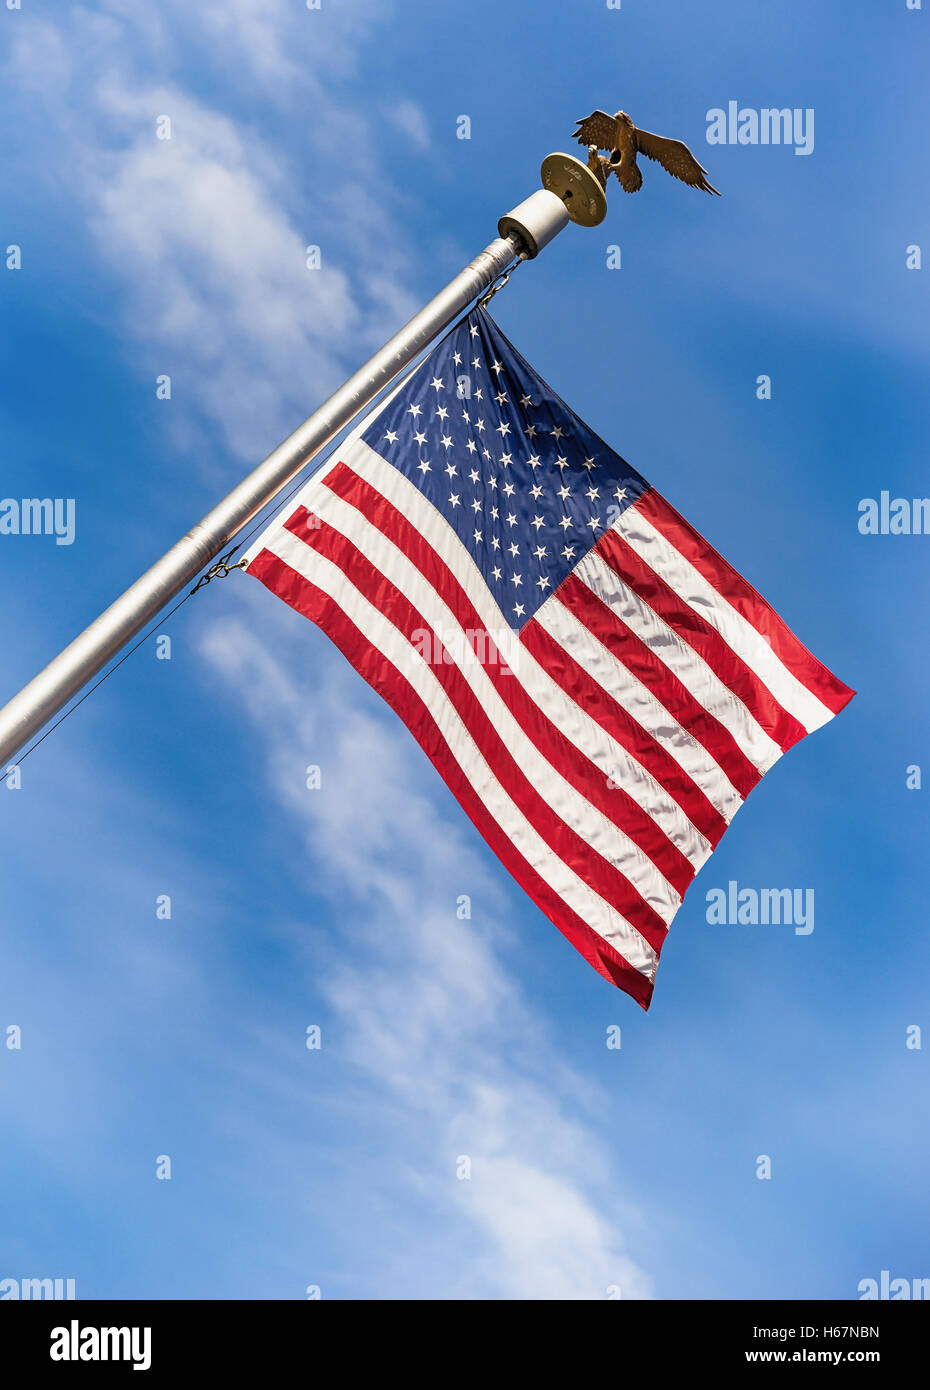 American flag on pole waving in the wind against blue sky background - Stock Image